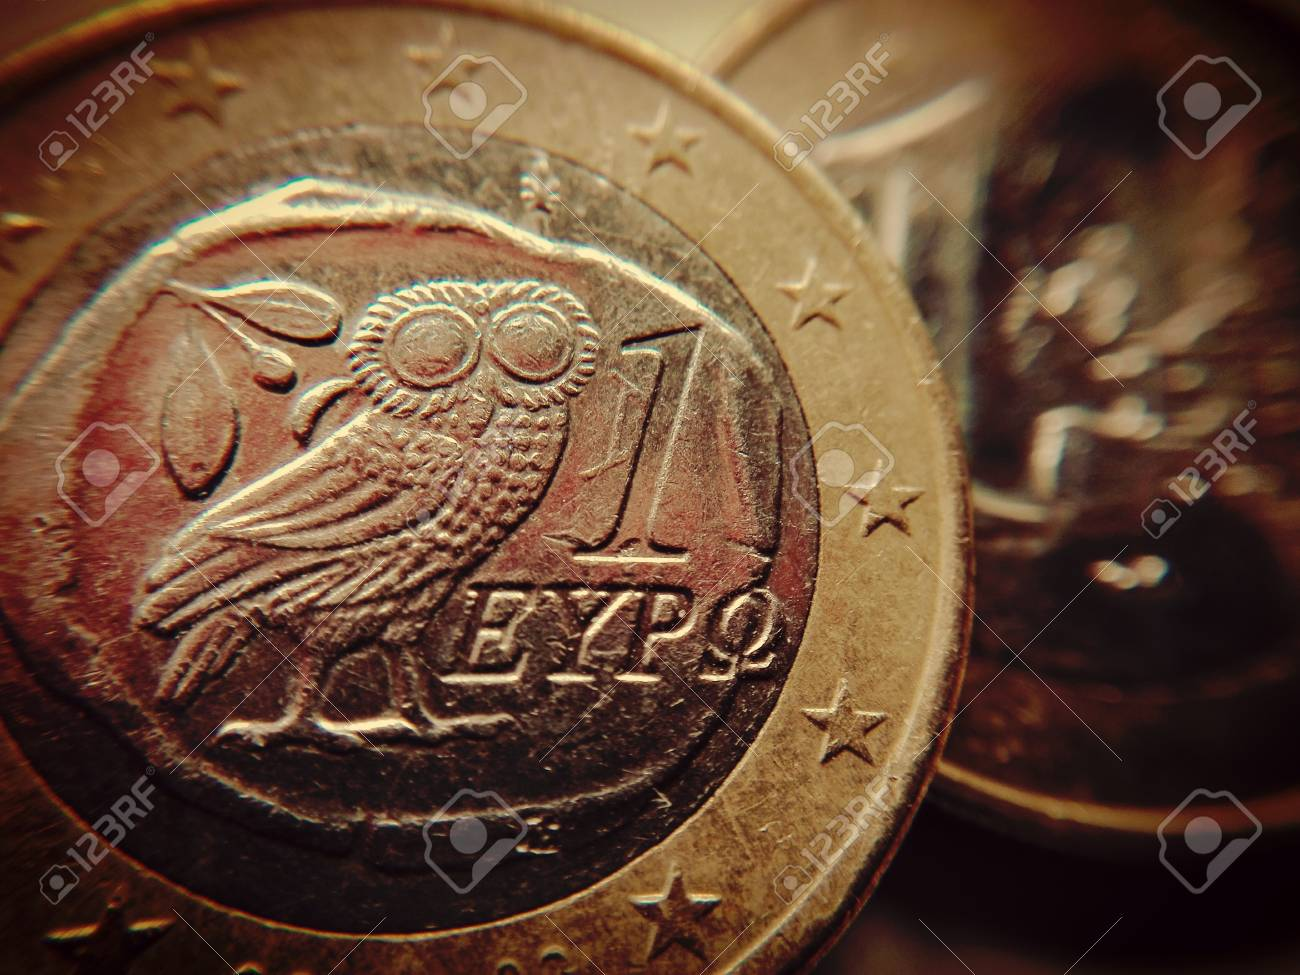 The owl of wisdom on a one euro coin - A Greek euro coin with the Athenian owl, - 83011894